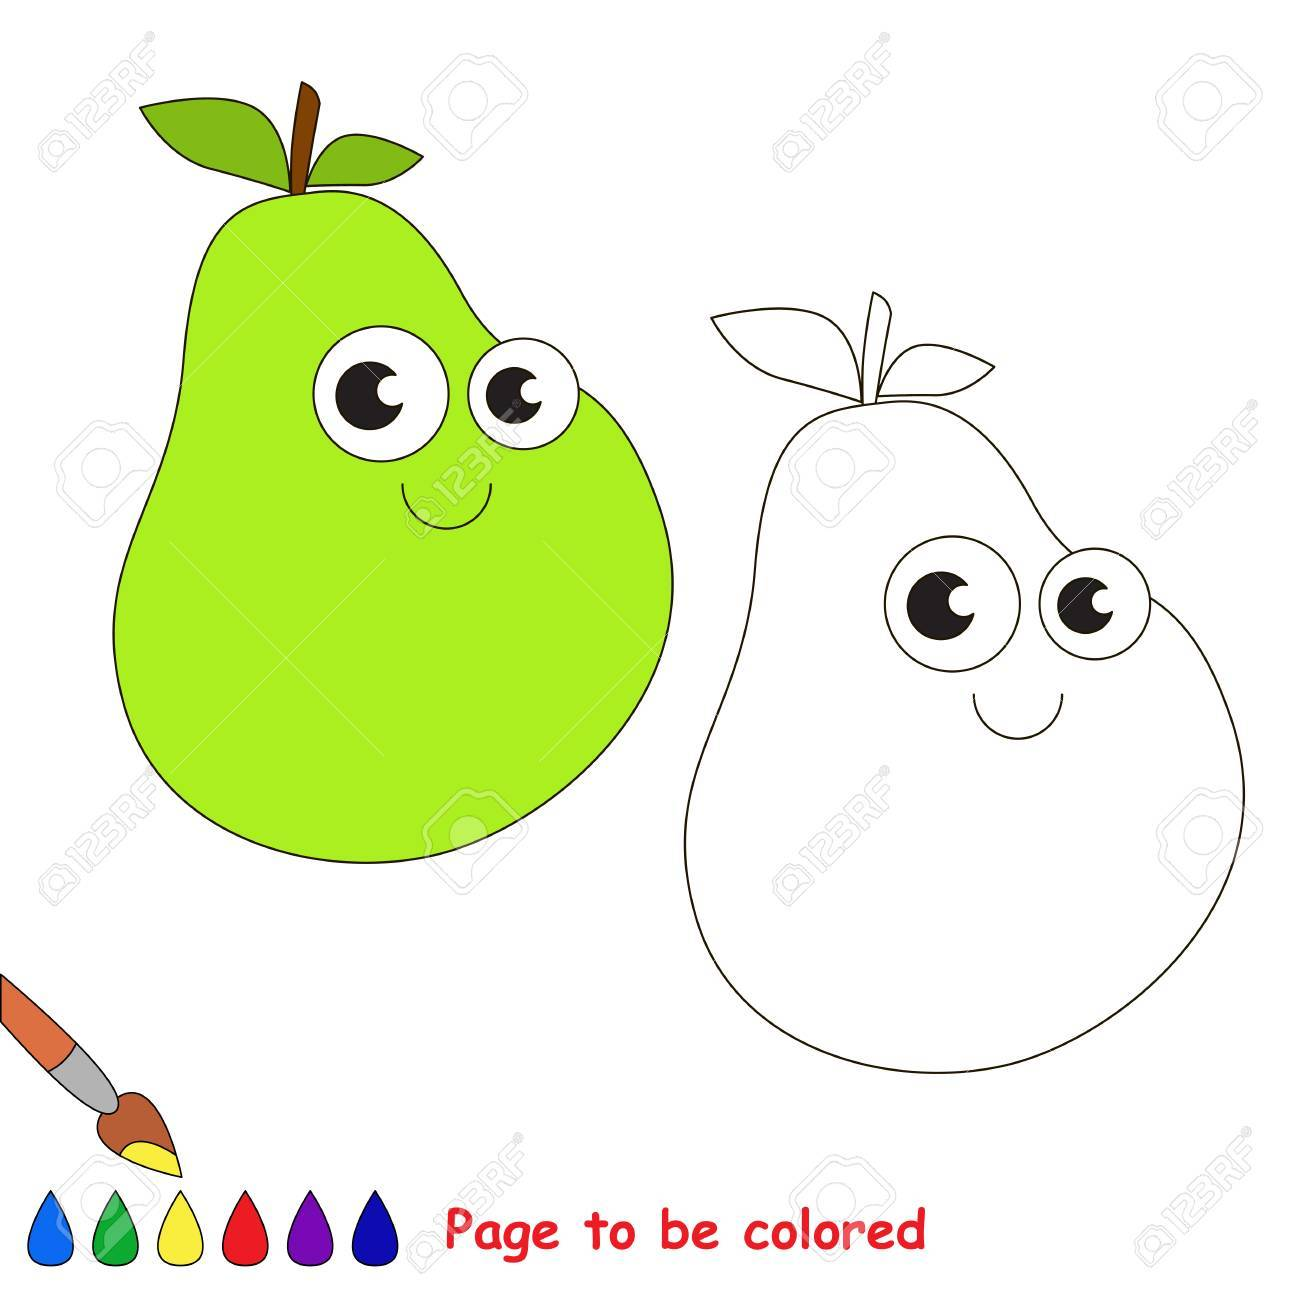 Funny Pear To Be Colored. Coloring Book To Educate Kids. Learn ...